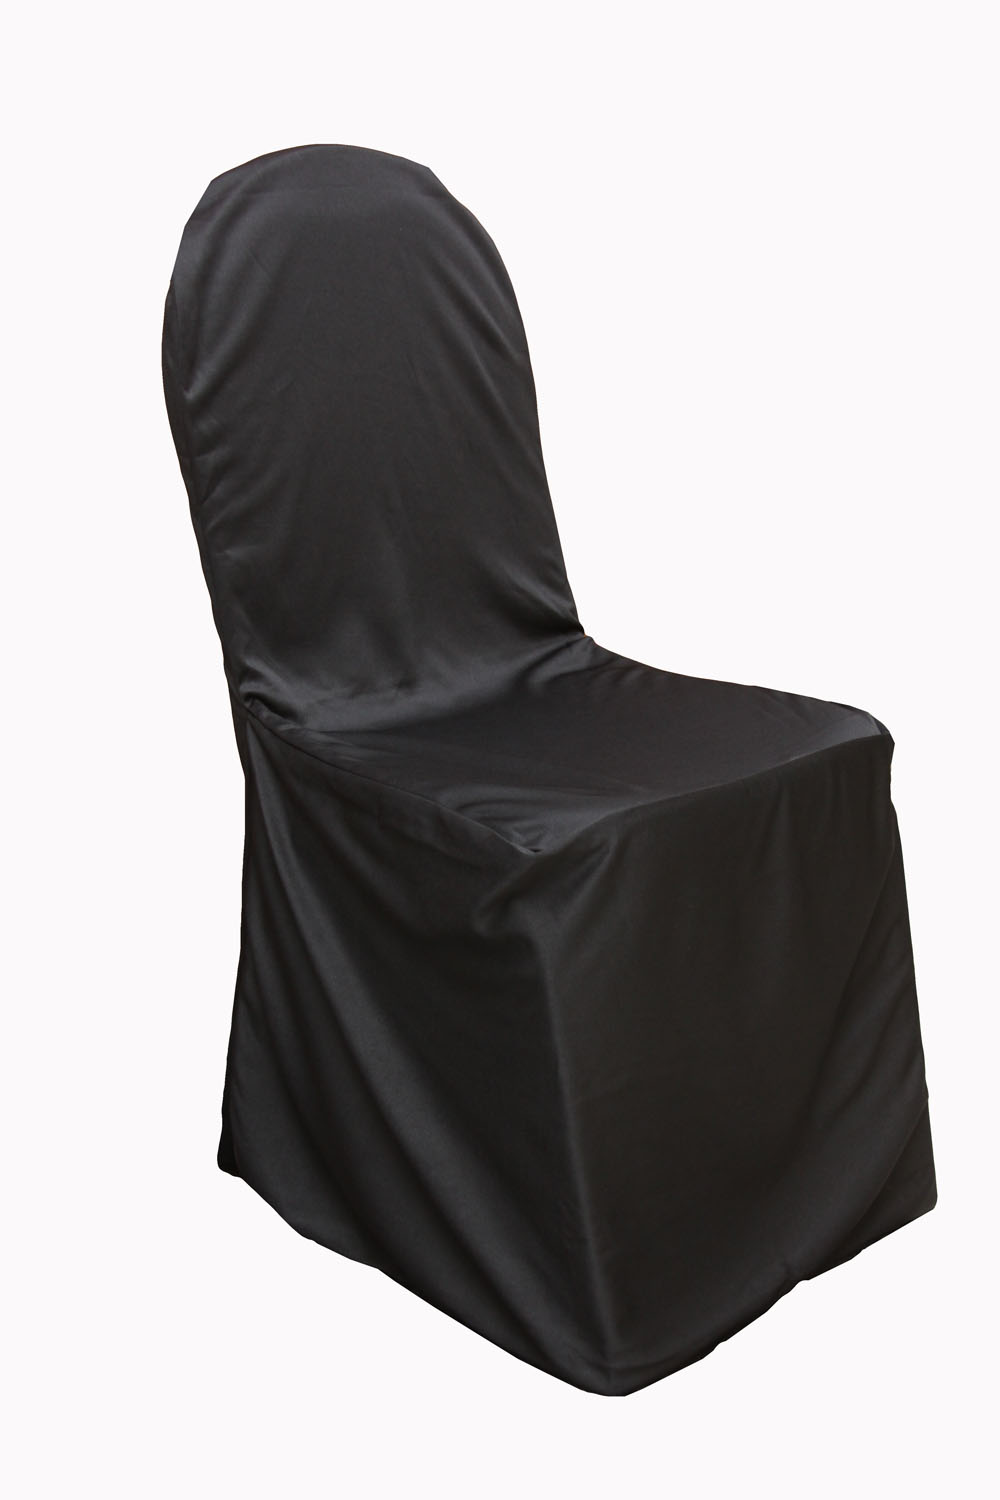 Remarkable Chair Covers Product Categories Tesoro Event Rentals Gmtry Best Dining Table And Chair Ideas Images Gmtryco